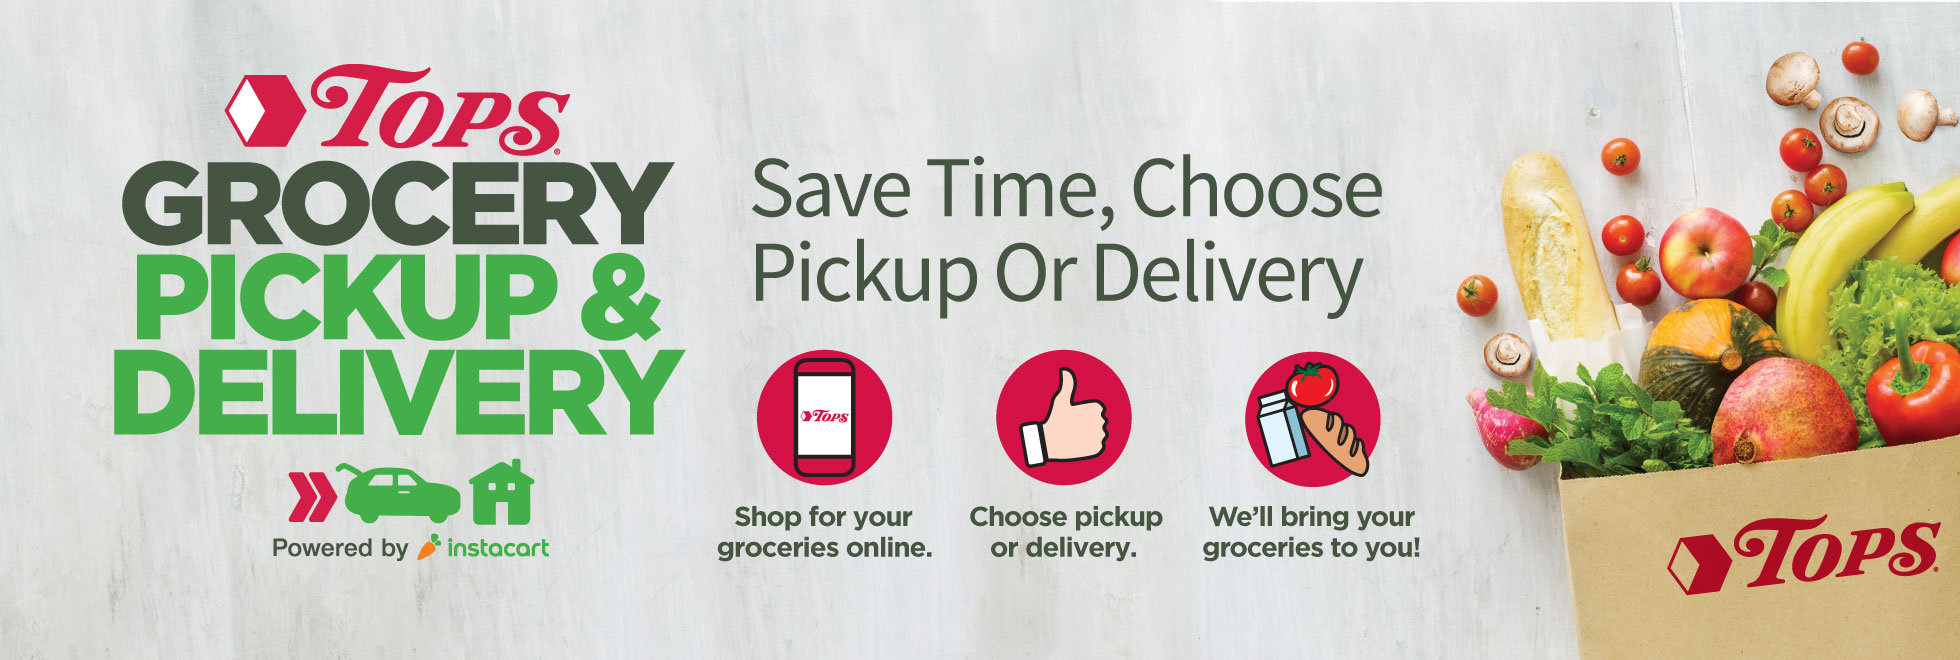 Instacart Grocery Pick-up and Delivery